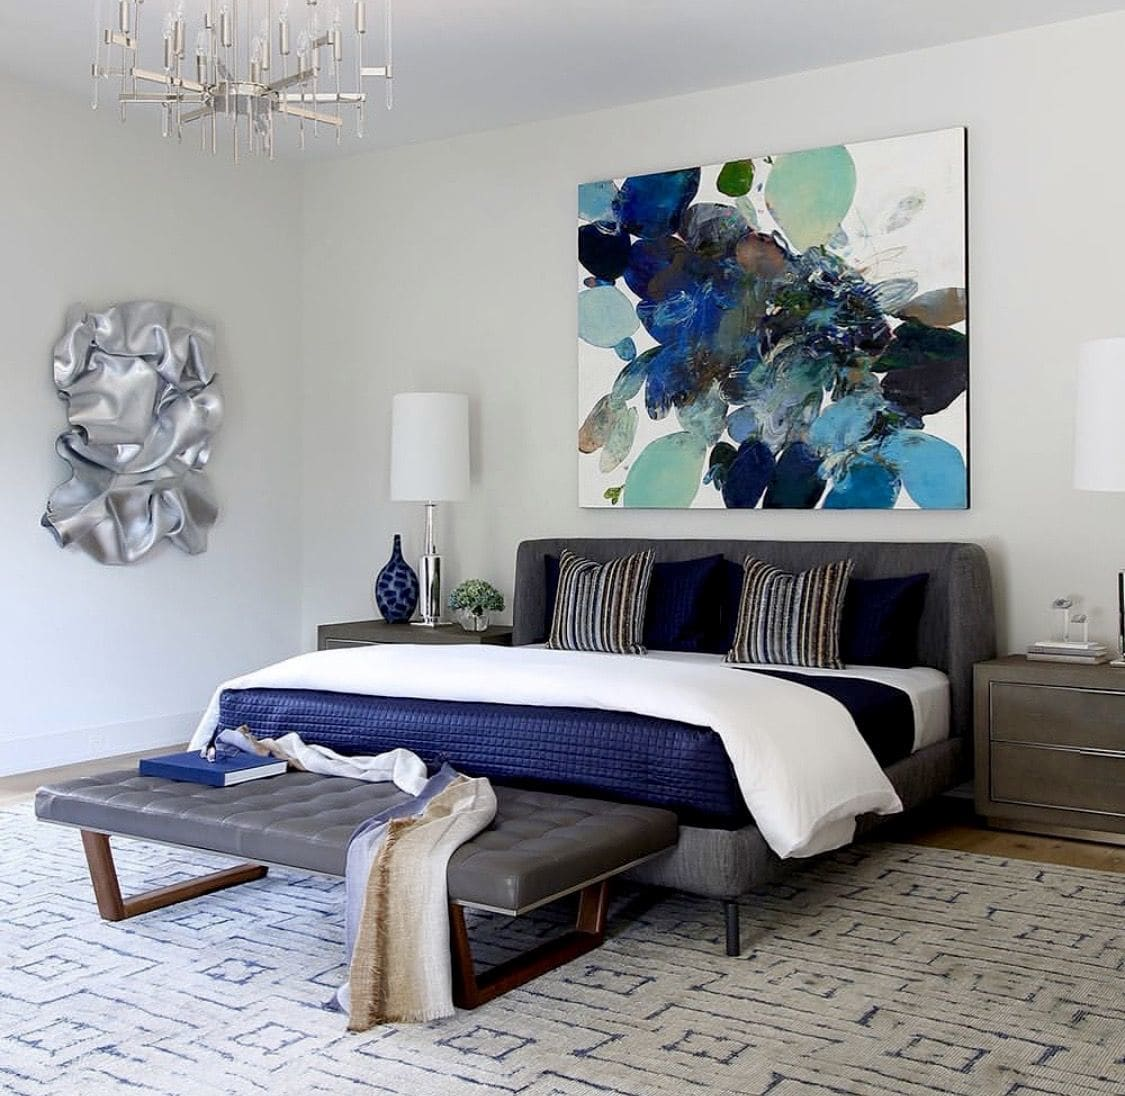 Abstract blues and greens painting in bedroom